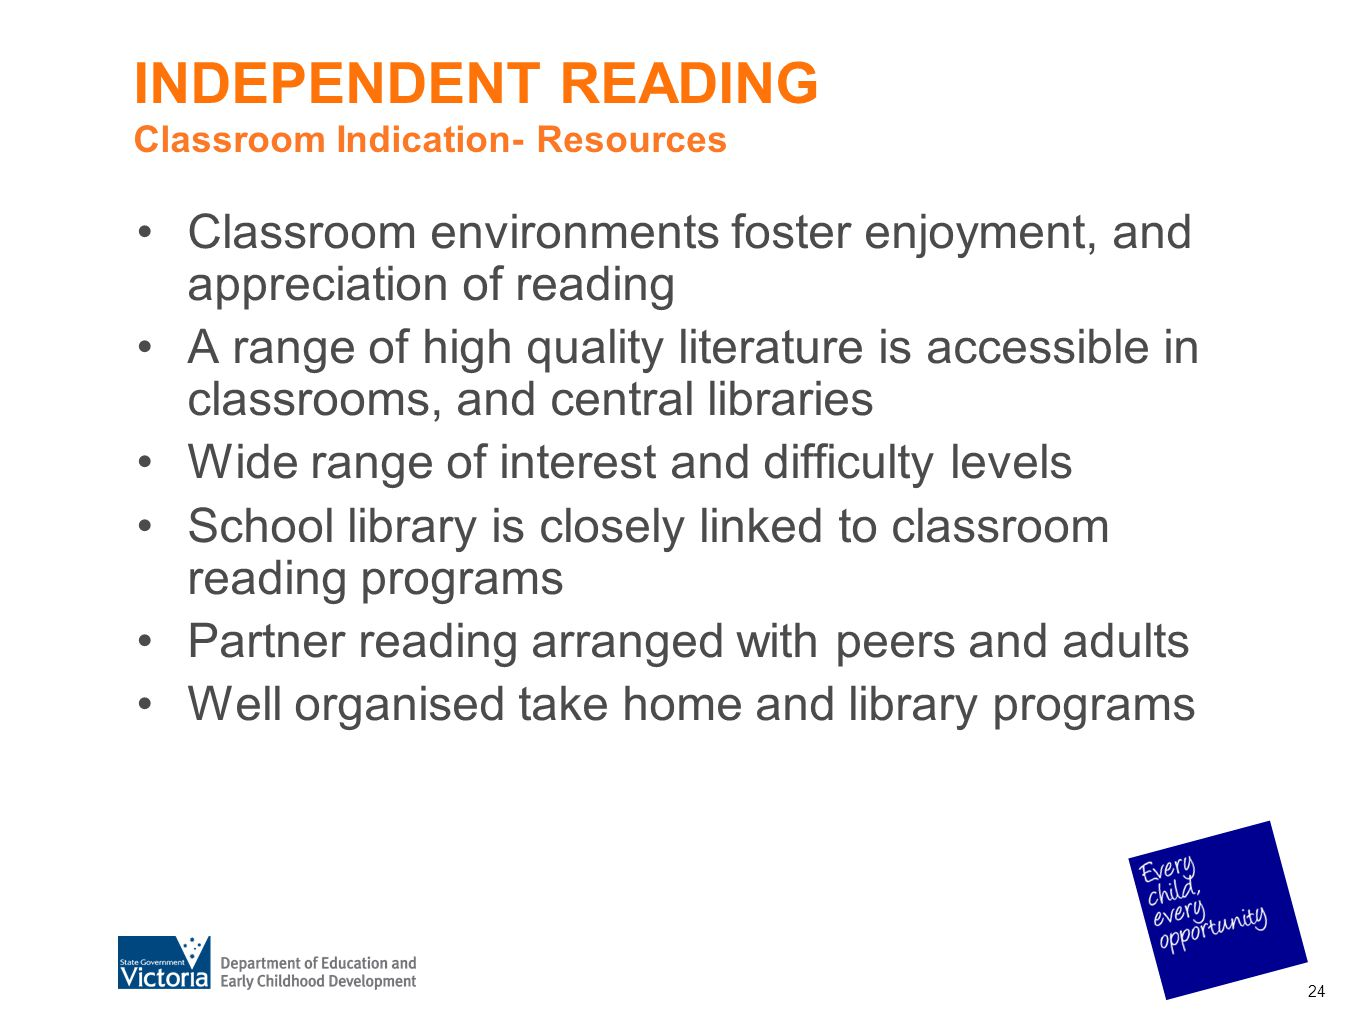 INDEPENDENT READING Classroom Indication- Resources